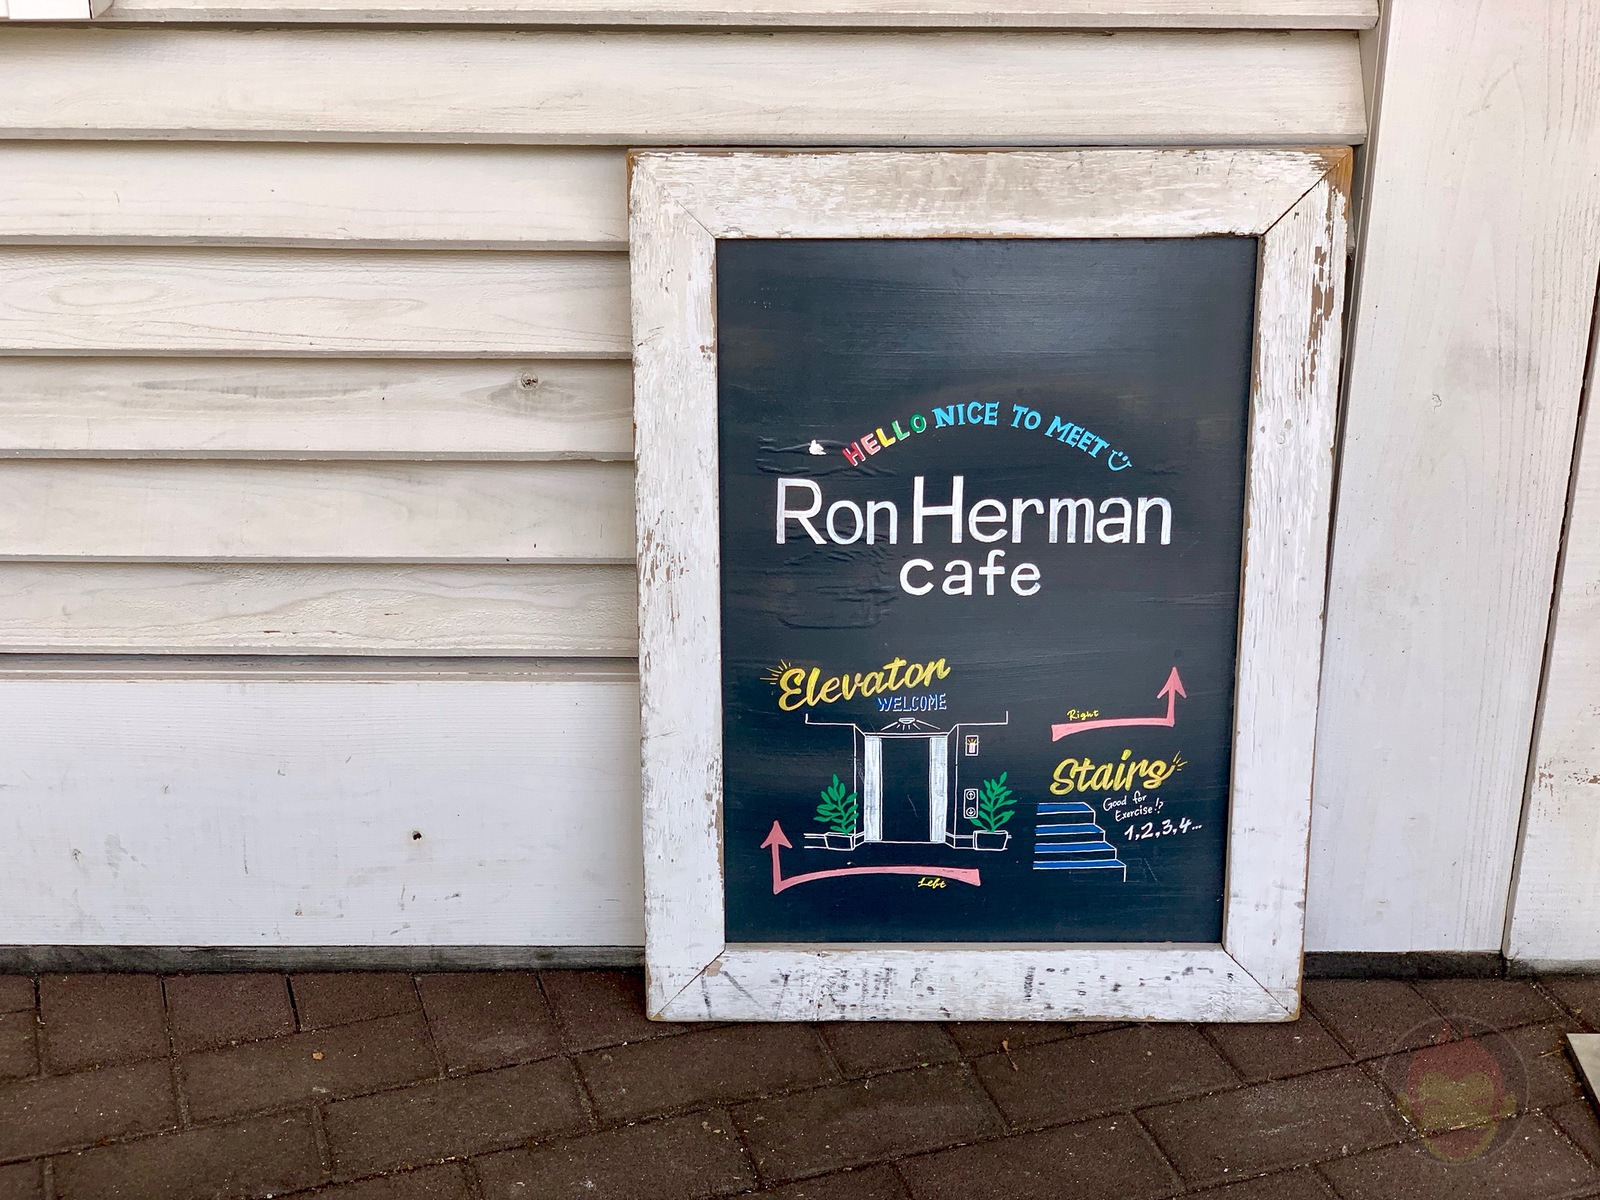 Ron Herman Cafe Futakotamagawa 03